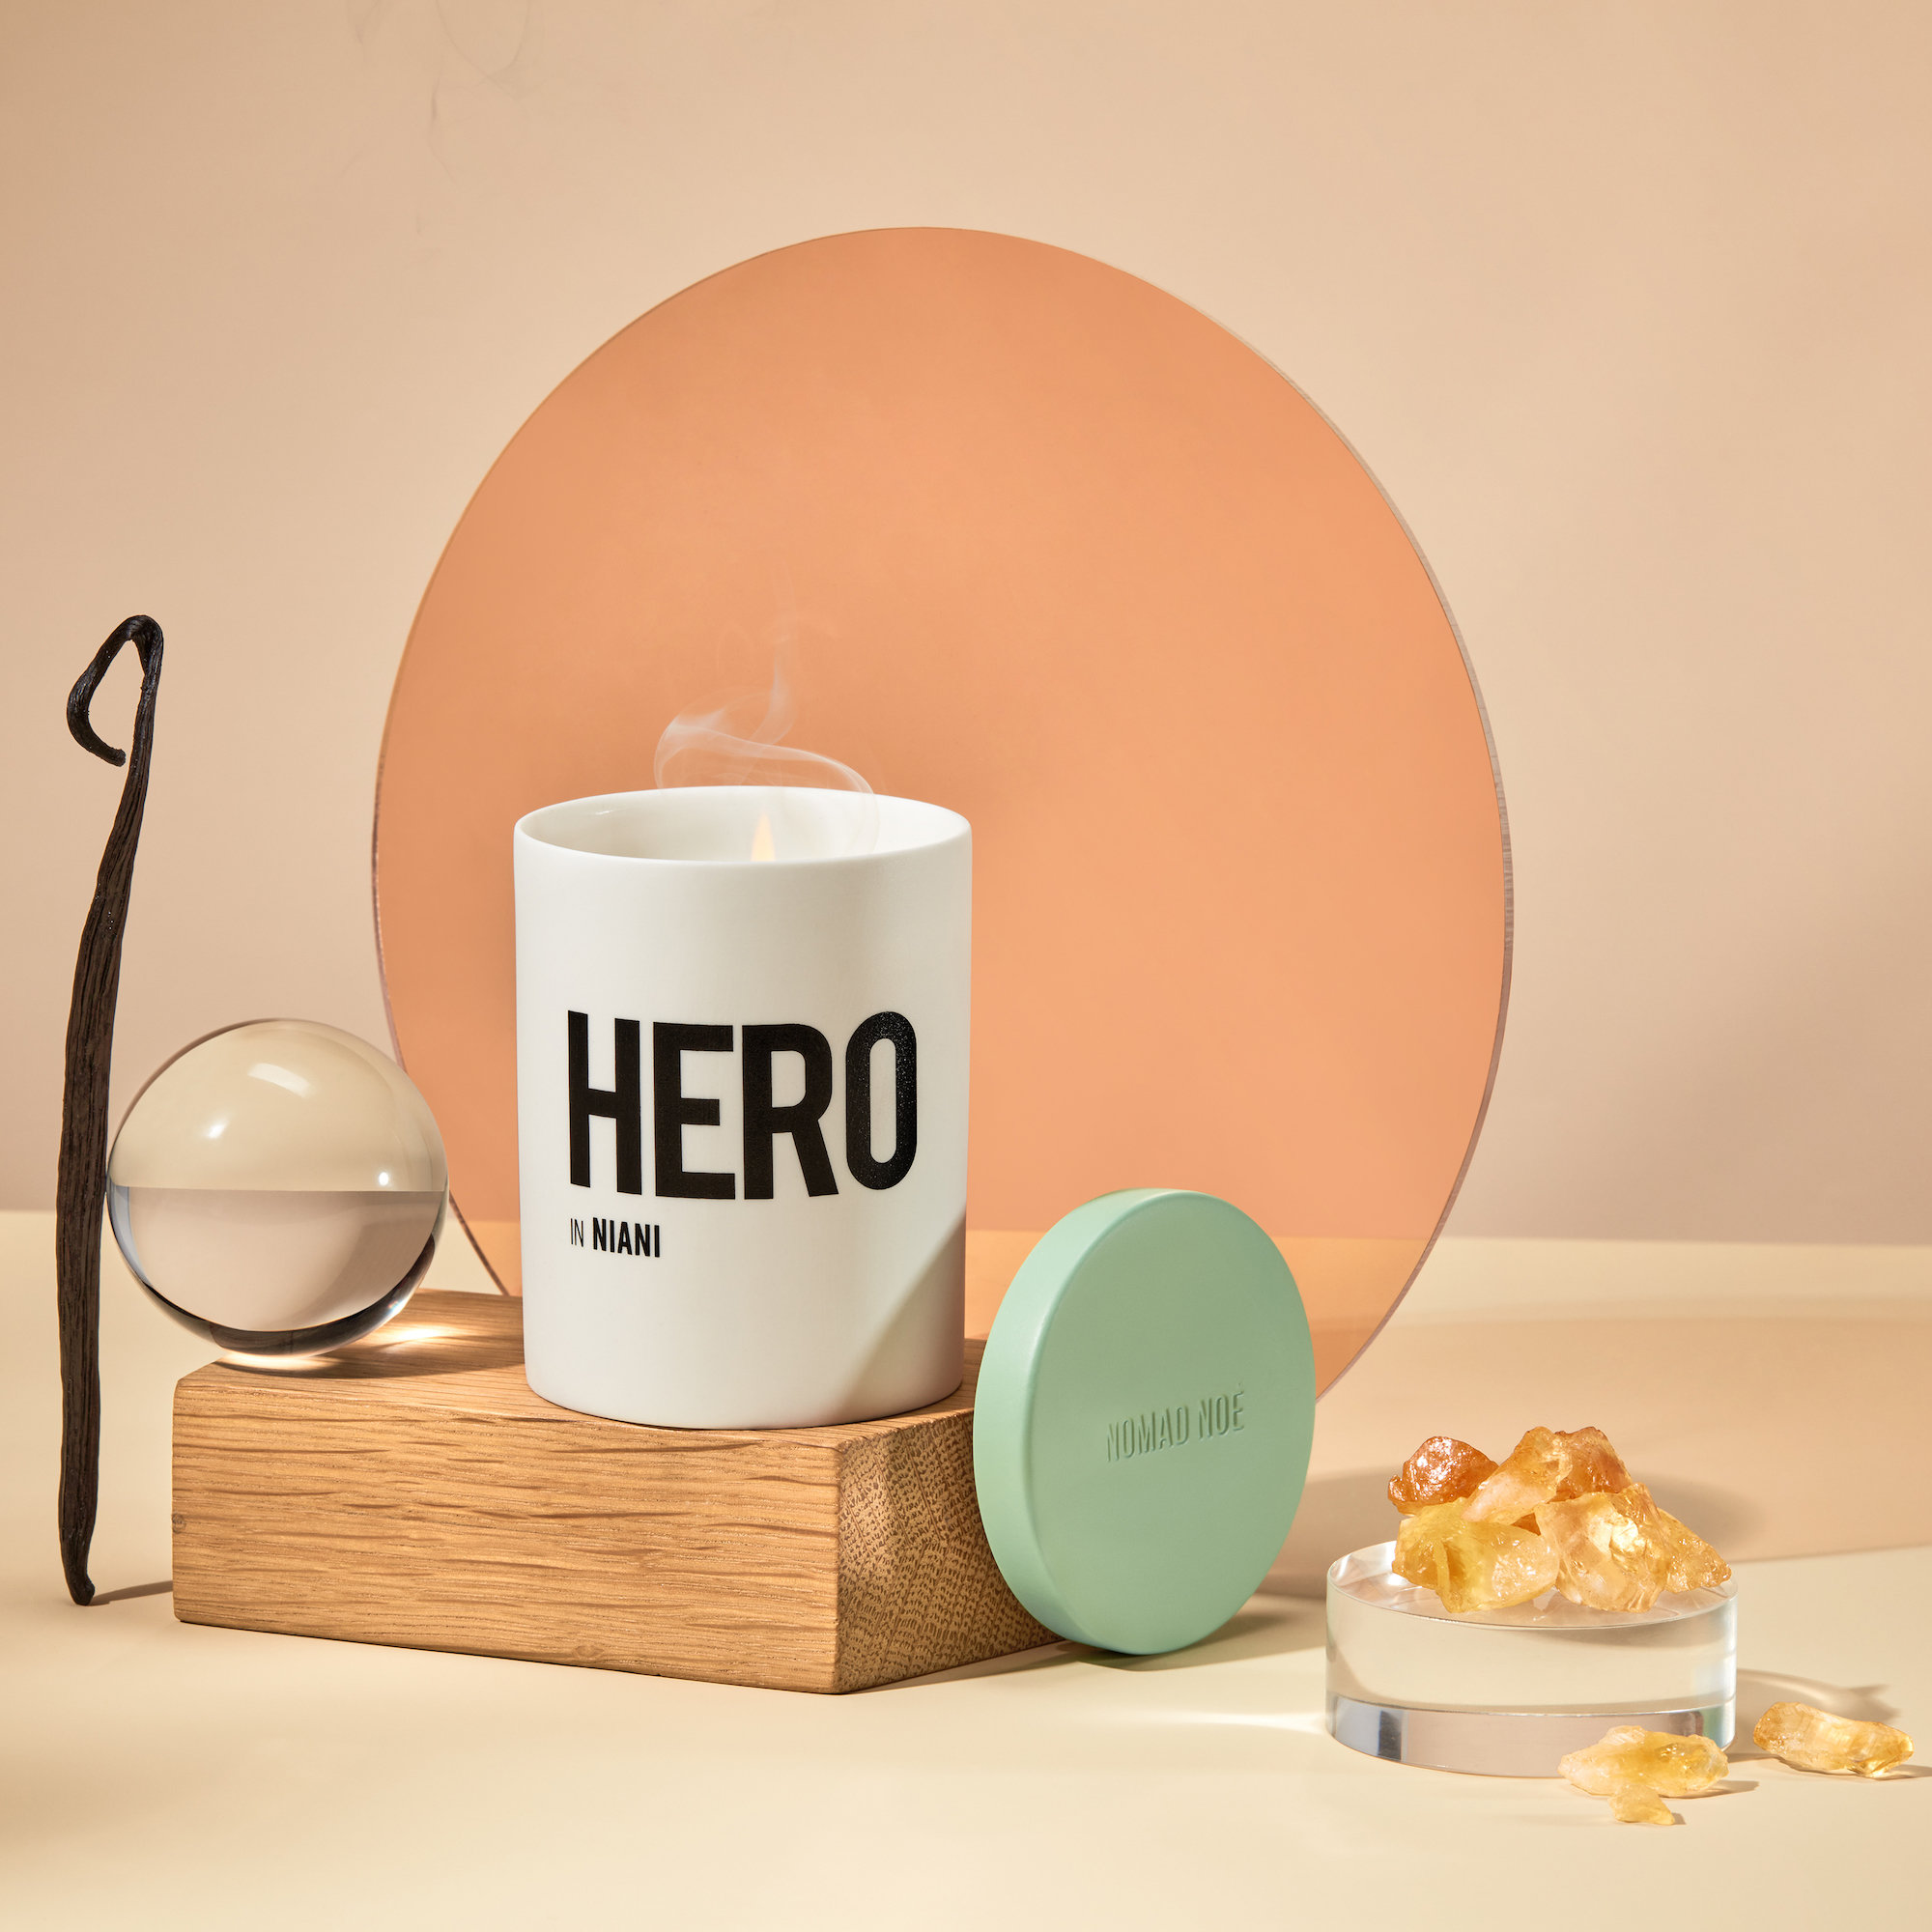 Alternate product image for Hero in Niani - Amber & Patchouli shown with the description.